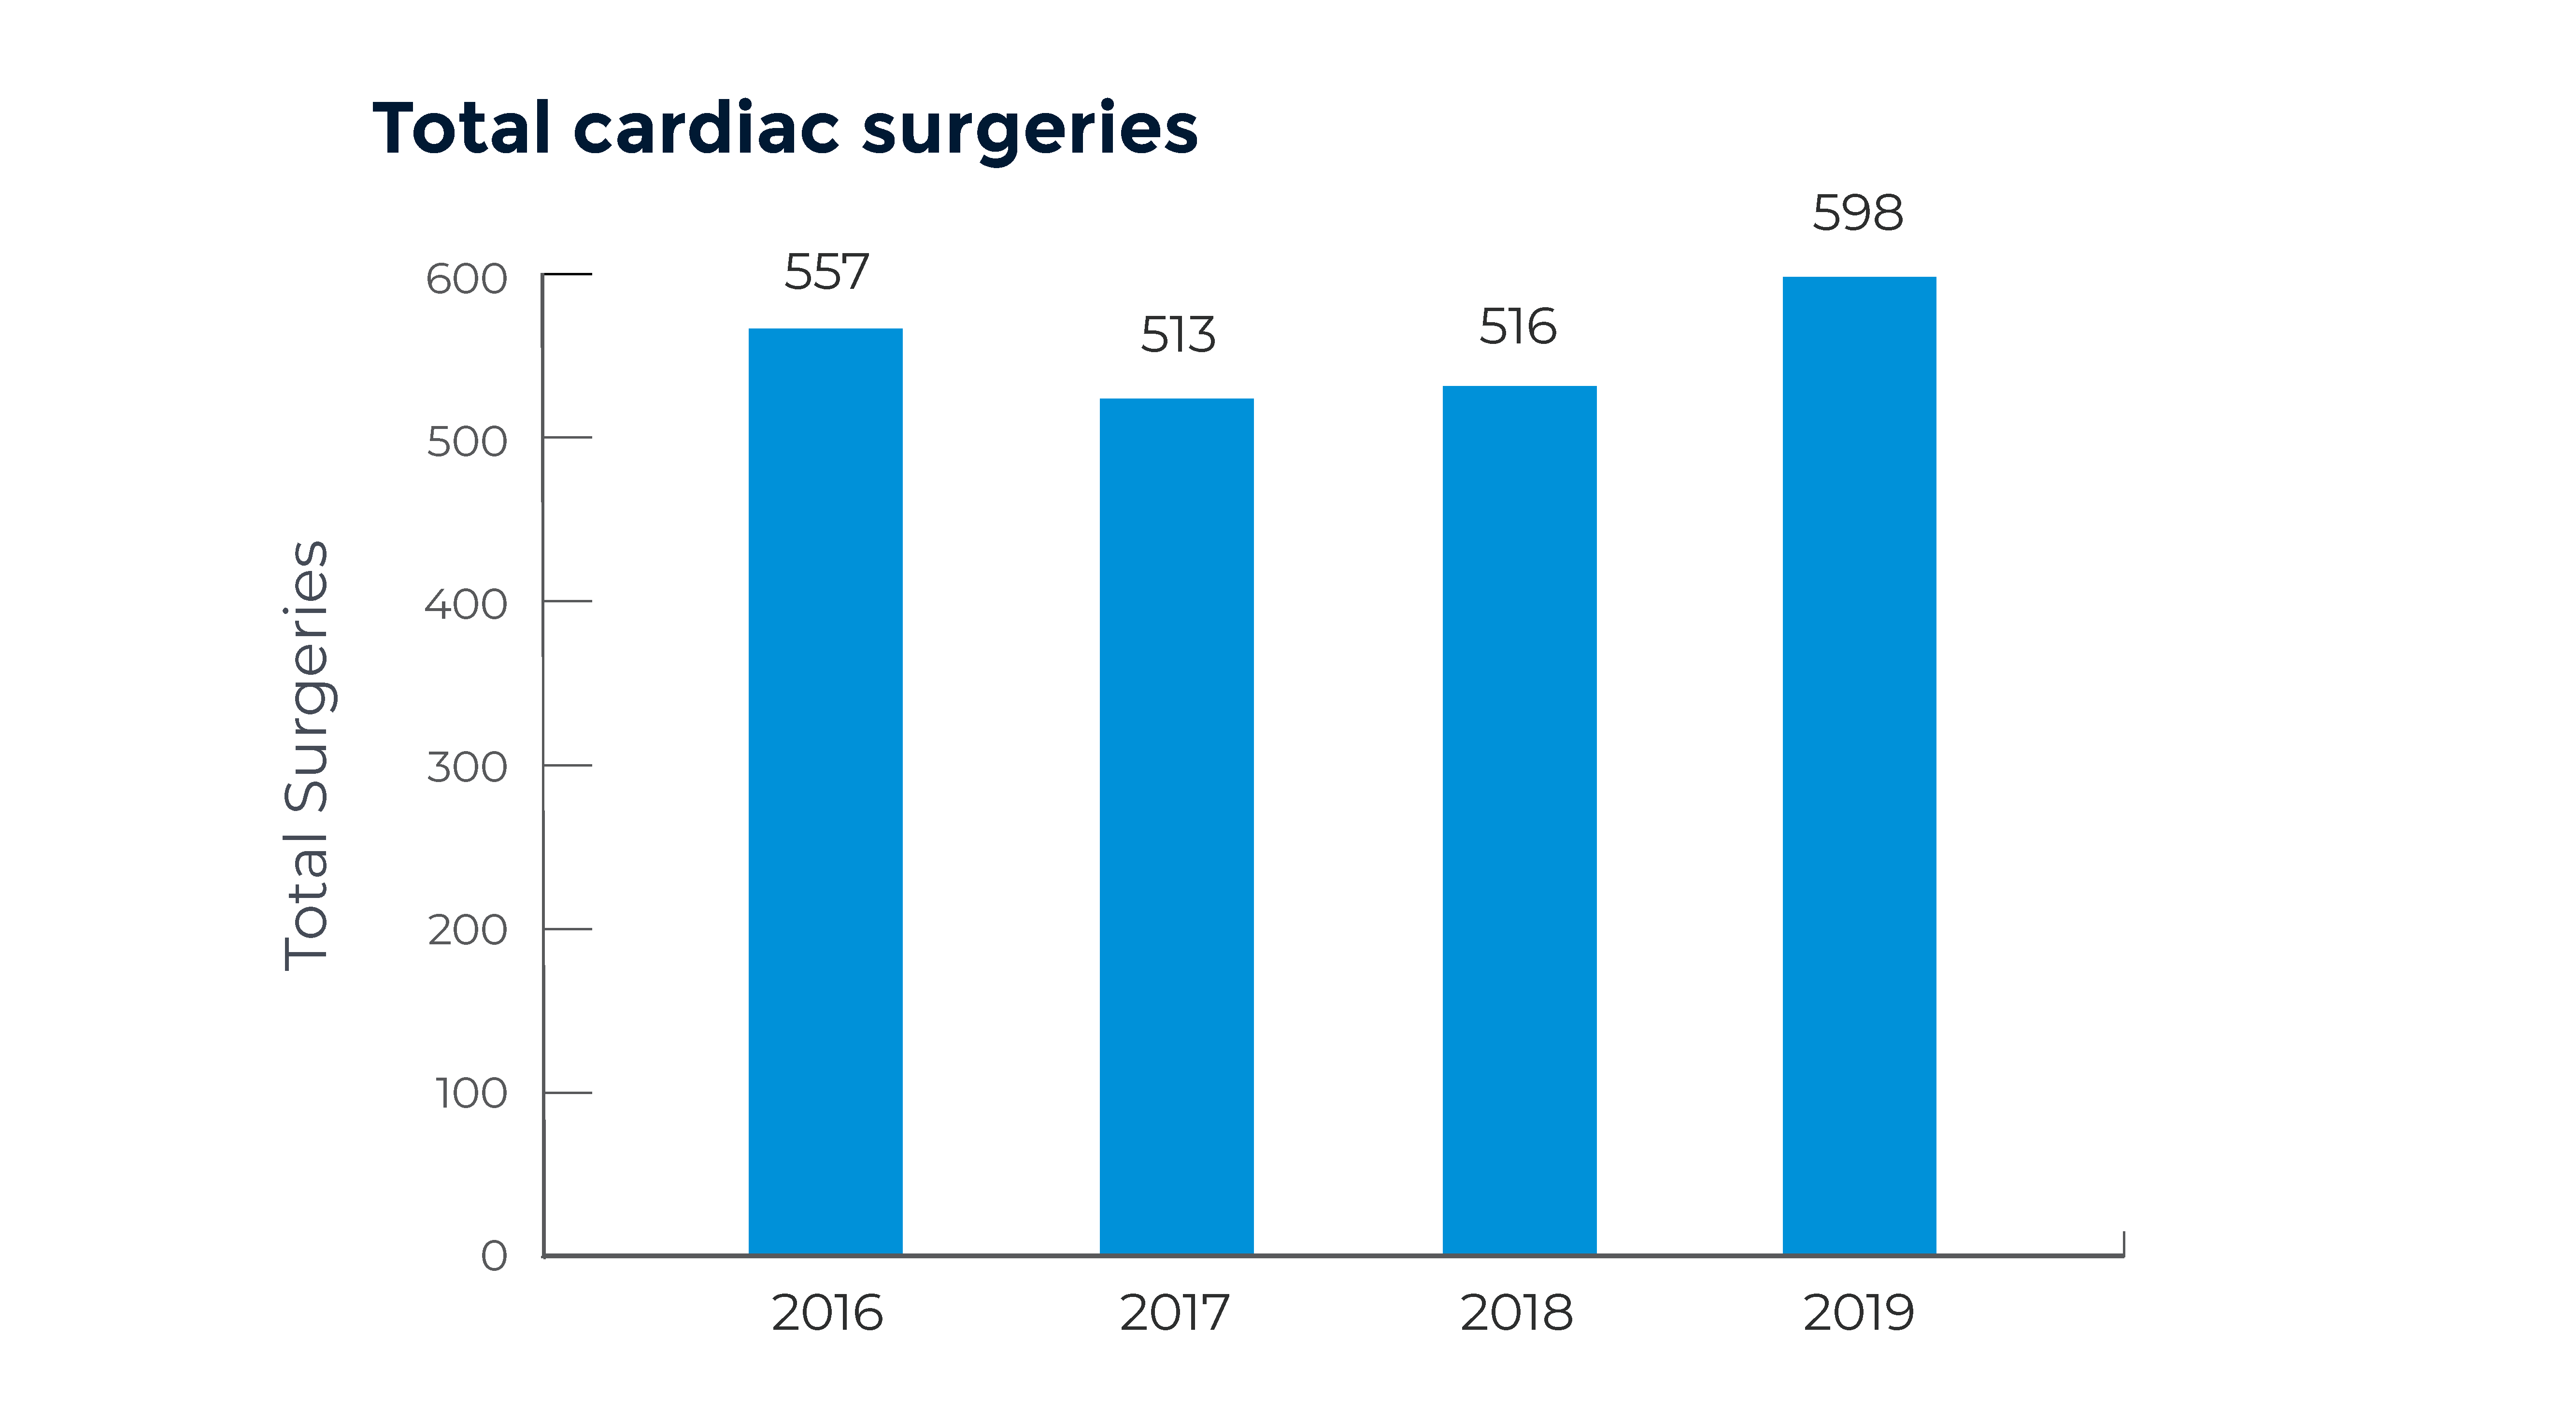 Bar chart showing the number of cardiac surgeries at Children's Colorado since 2016. 2016: 557; 2017: 513; 2018: 516; 2019: 598